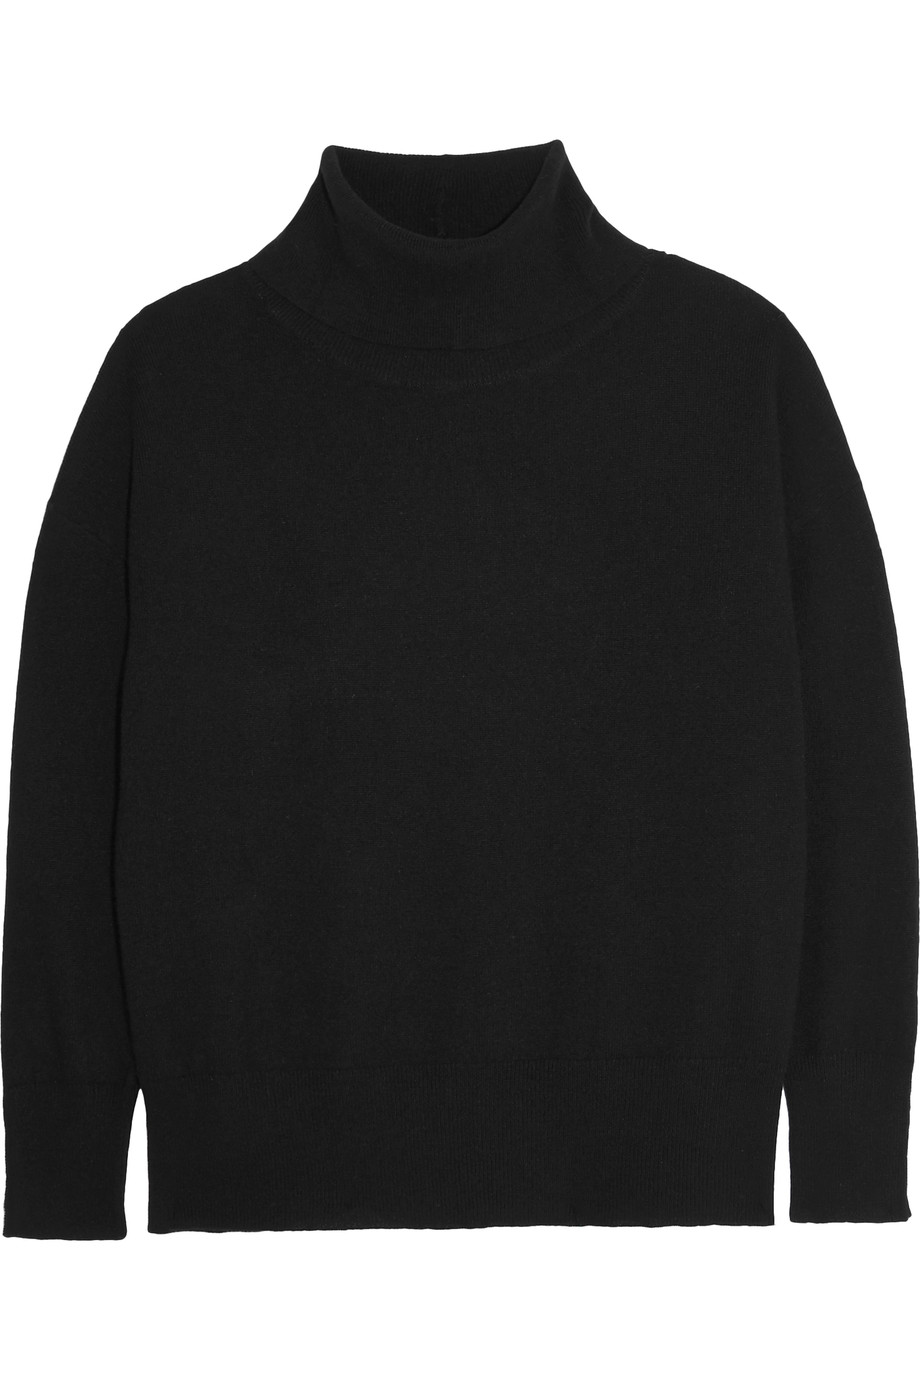 Iris & Ink Grace Sweater in Black